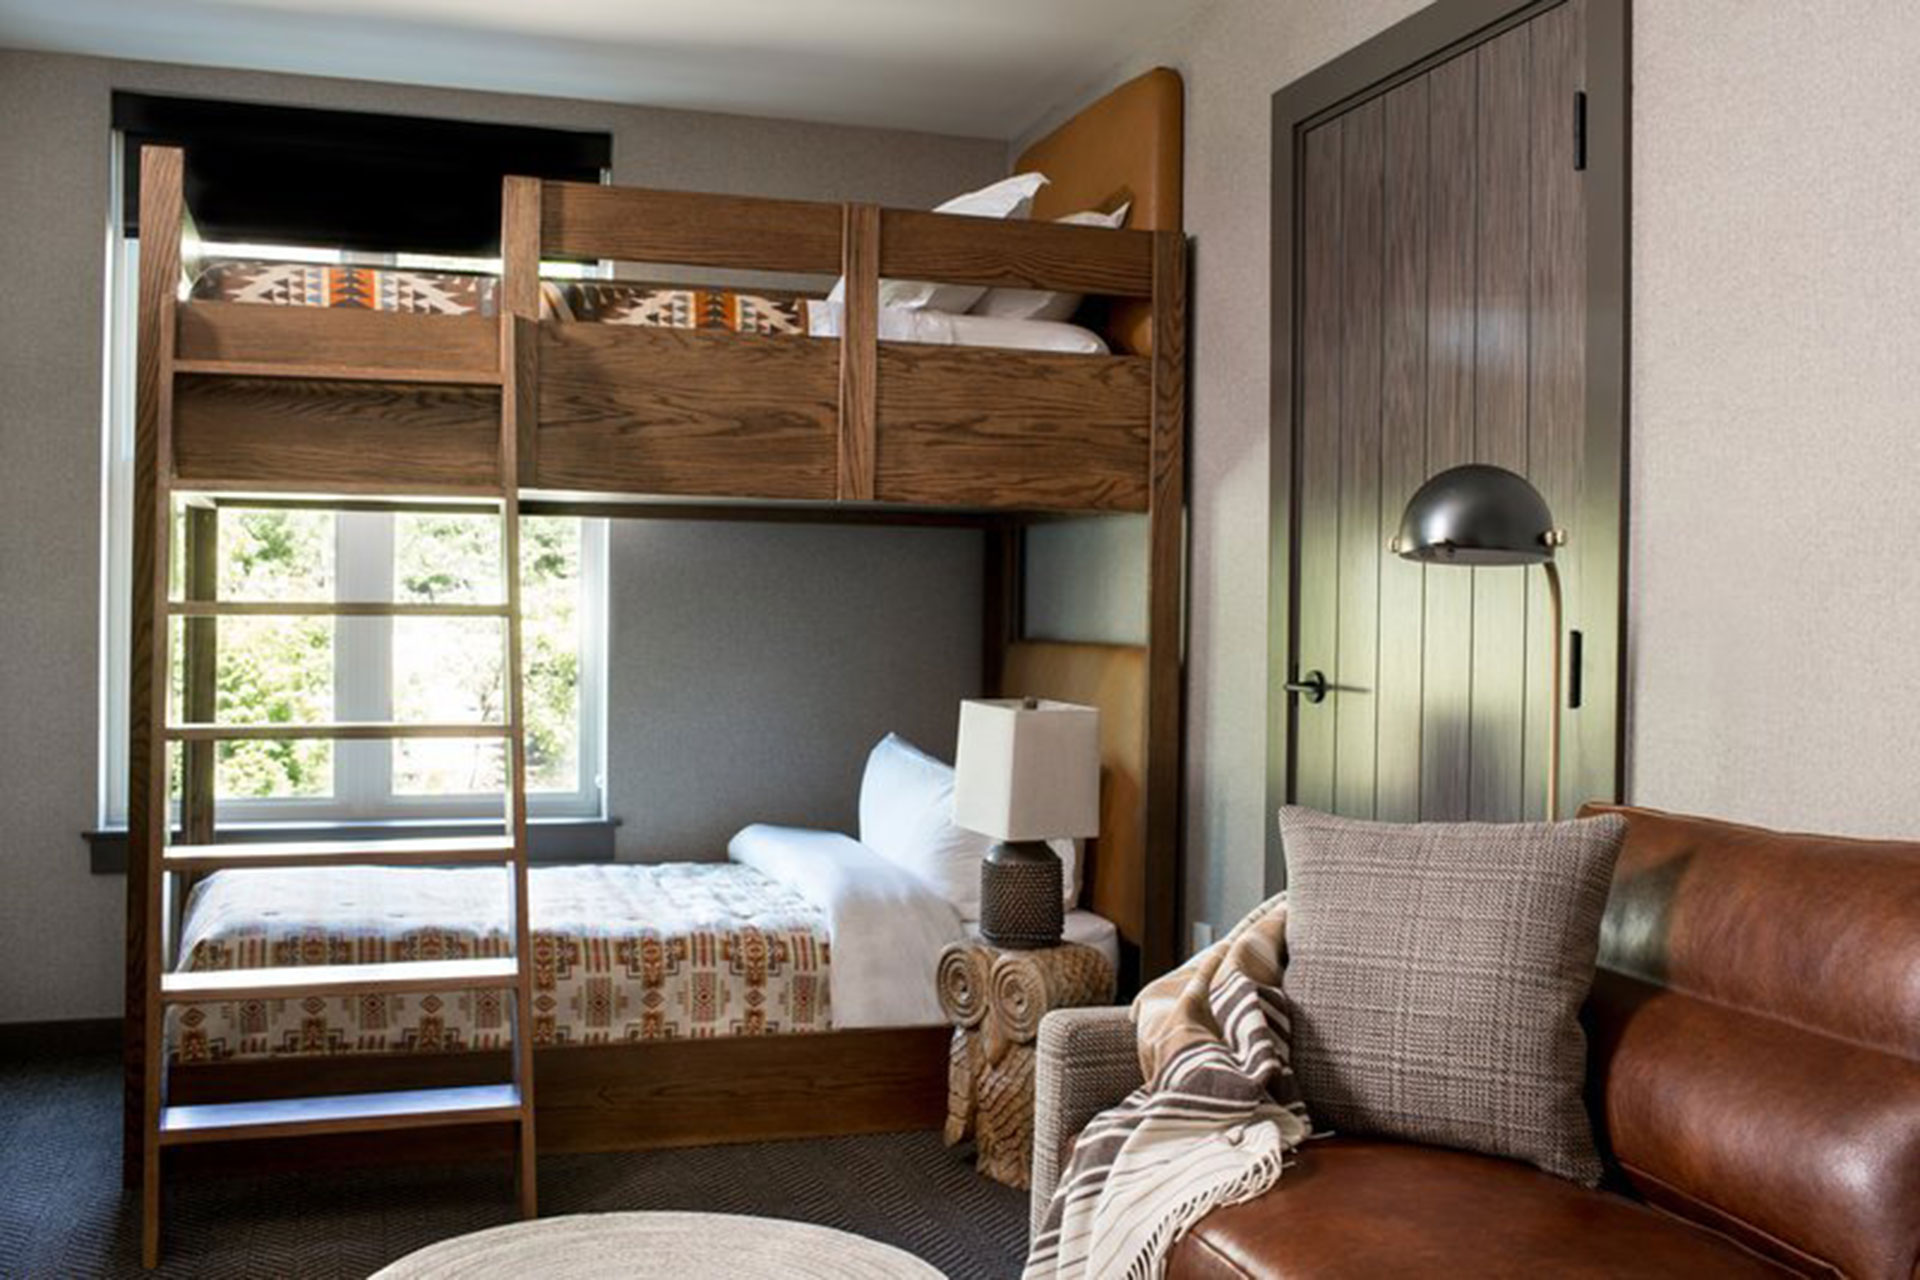 Bunk Bed Room at the Kimpton RiverPlace Hotel; Courtesy of Kimpton RiverPlace Hotel